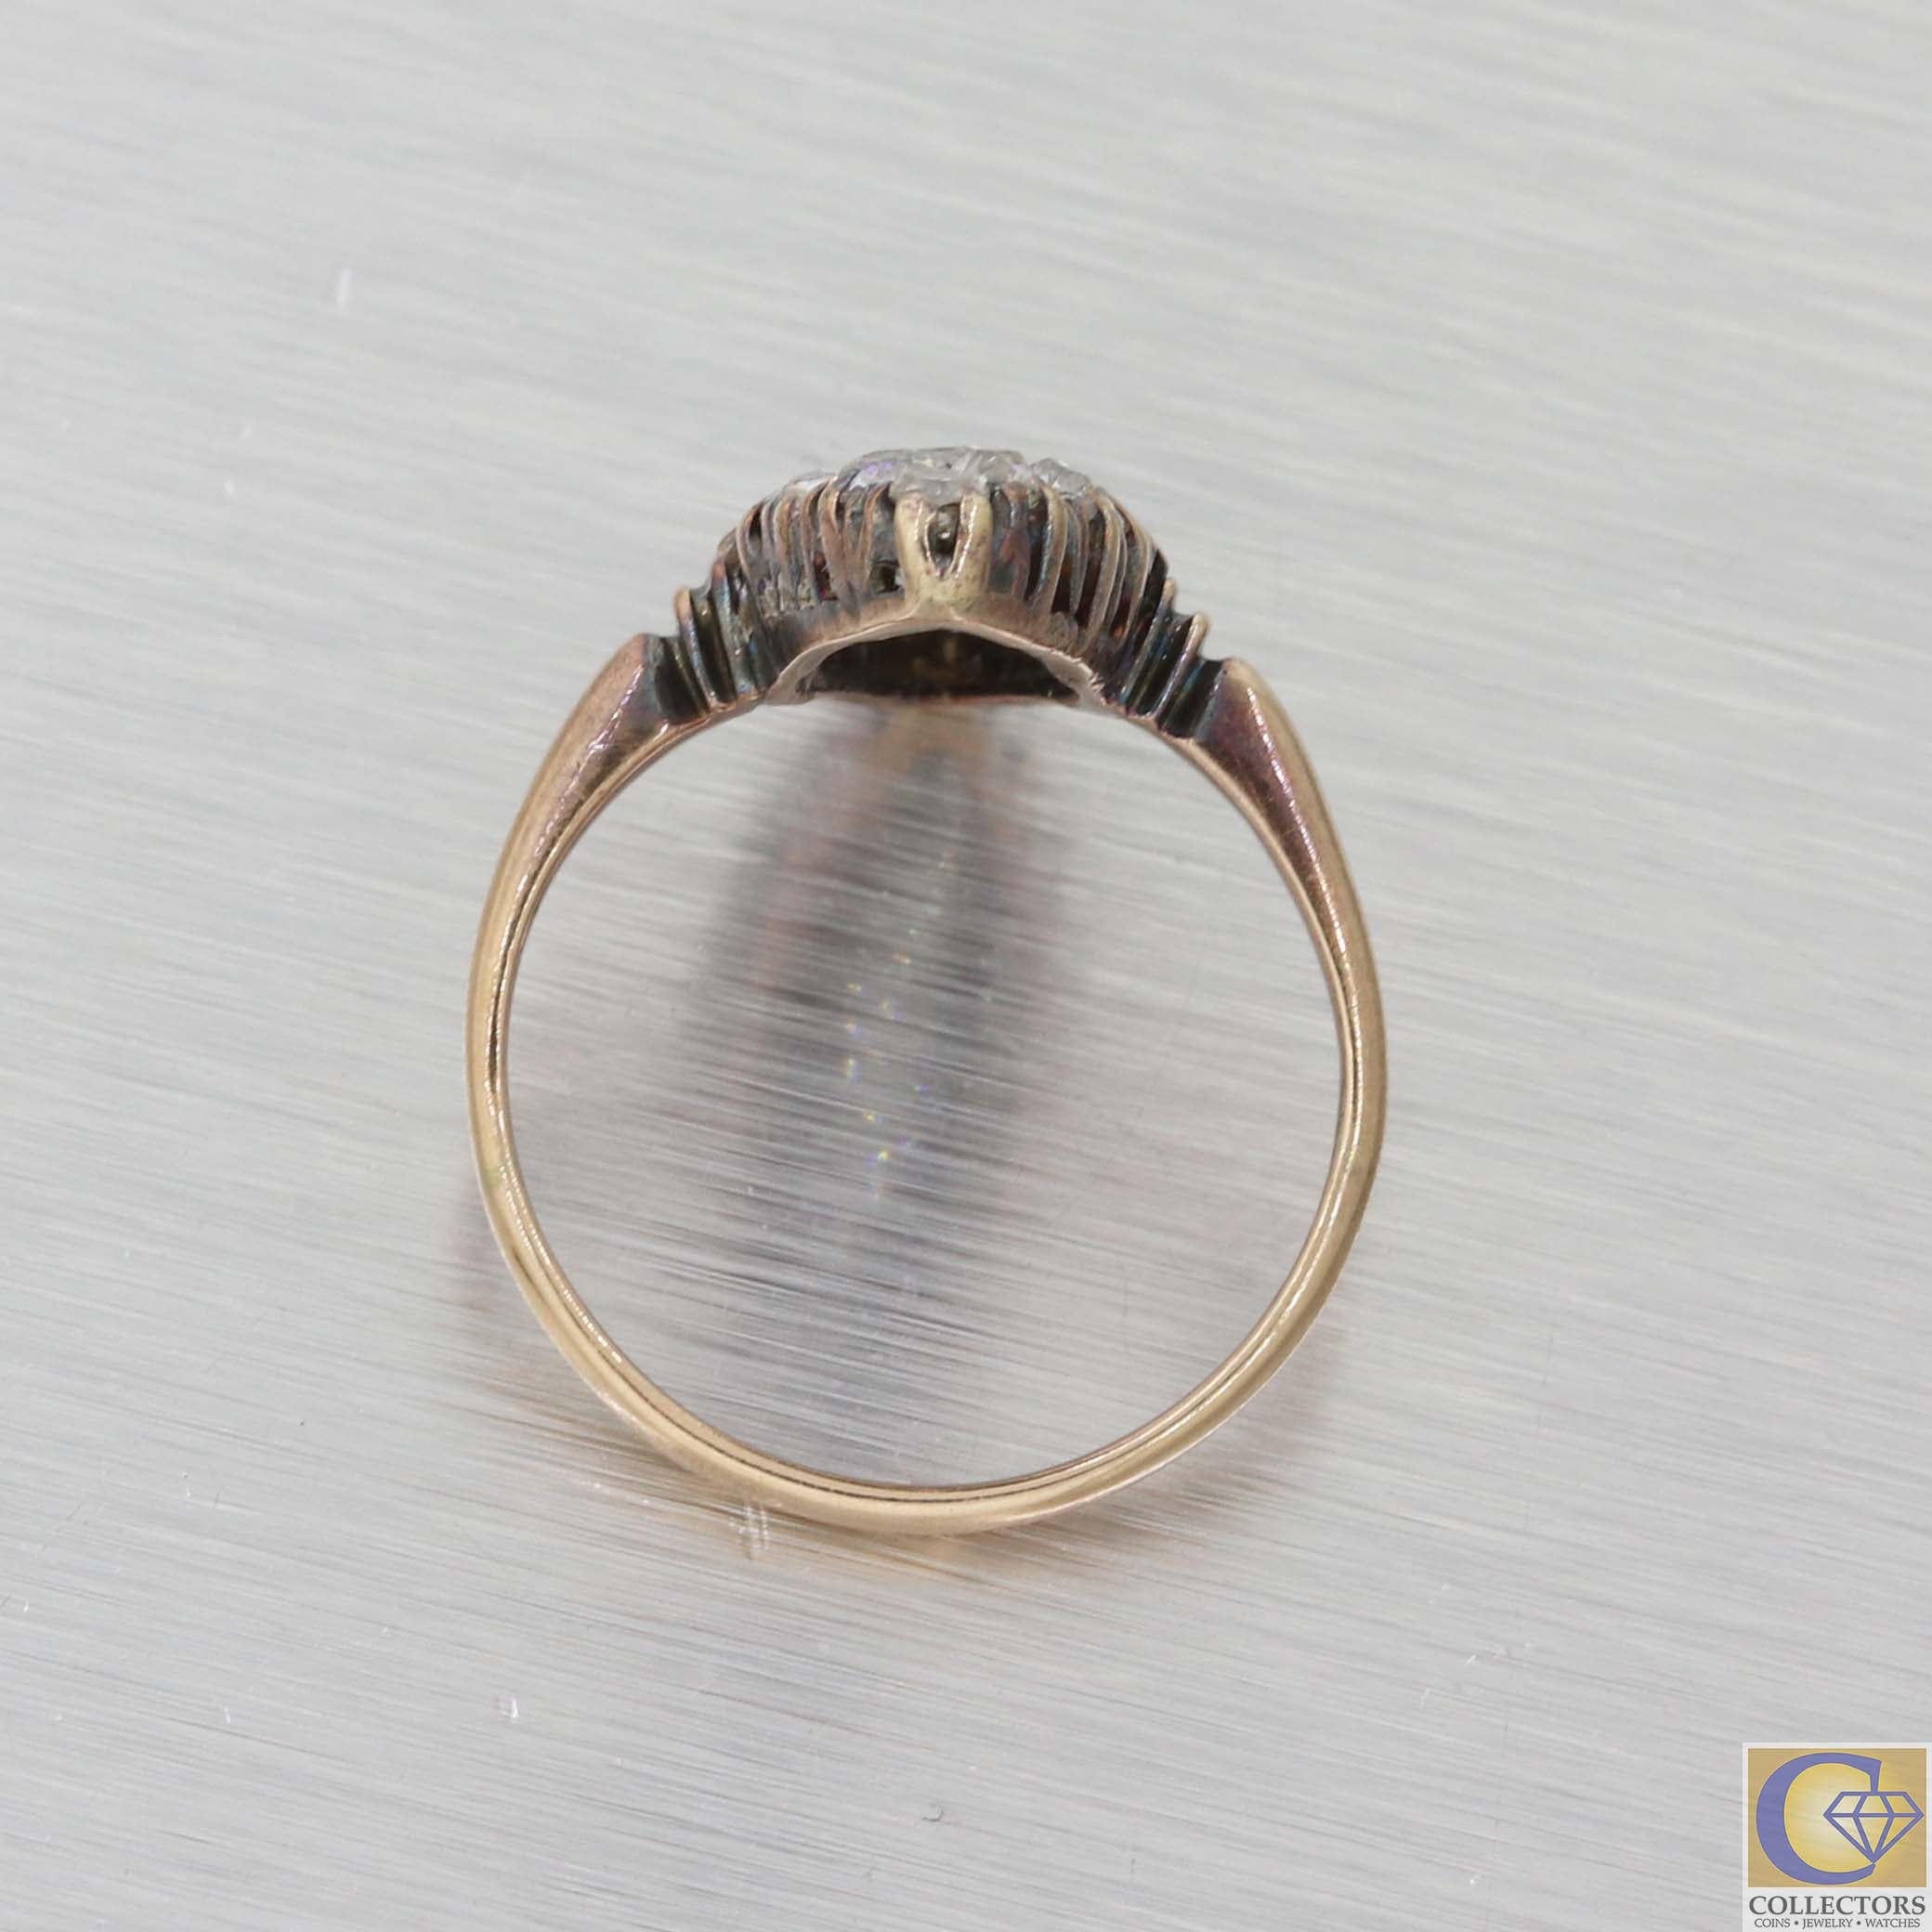 1880 Antique Victorian Solid 14k Yellow Gold 1.50ctw Diamond Navette Ring A8